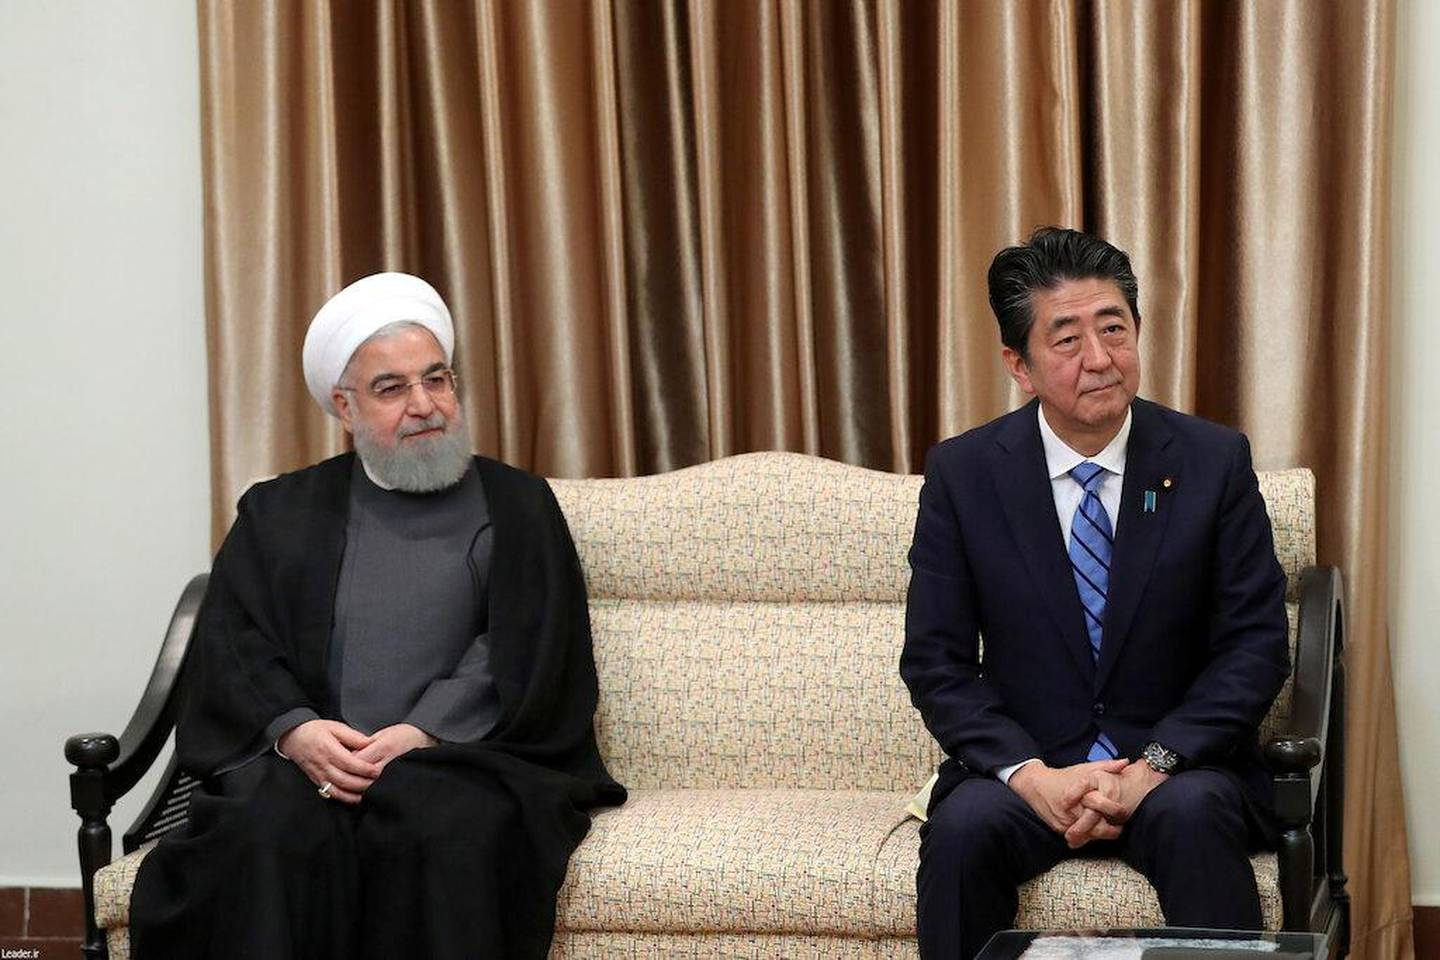 Iranian President Hassan Rouhani, Japan's Prime Minister Shinzo Abe meet with the Iran's Supreme Leader Ayatollah Ali Khamenei in Tehran, Iran June 13, 2019. Official Khamenei website/Handout via REUTERS ATTENTION EDITORS - THIS IMAGE WAS PROVIDED BY A THIRD PARTY. NO RESALES. NO ARCHIVES